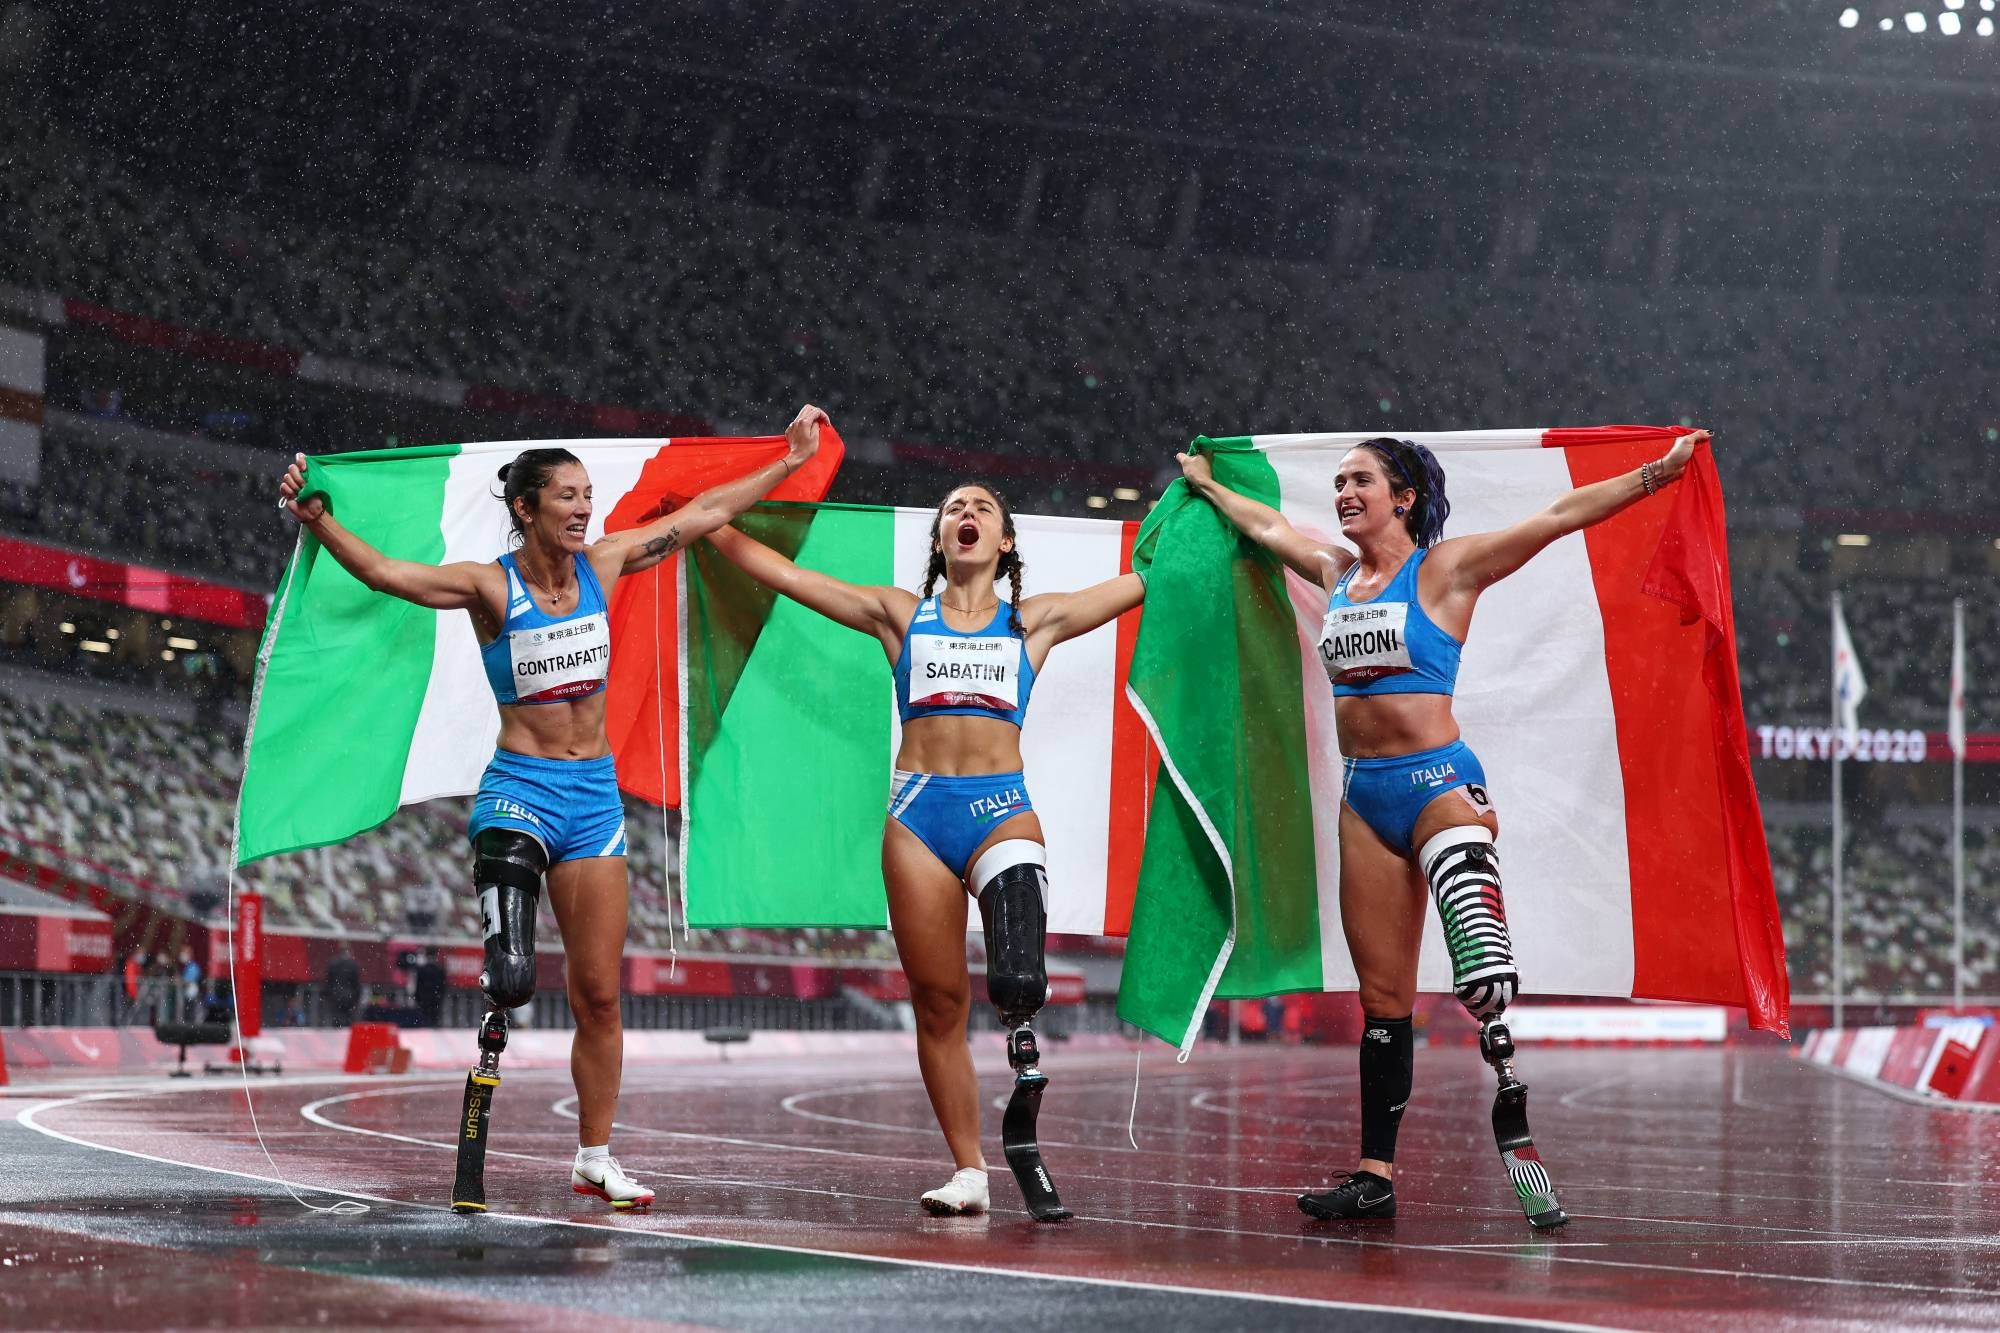 Team Italy celebrates sweeping the top spots in the women's T63 100 meters. From left: Monica Graziana Contrafatto (bronze), Ambra Sabatini (gold) and Martina Caironi (silver). Sabatini also broke the world record.   REUTERS